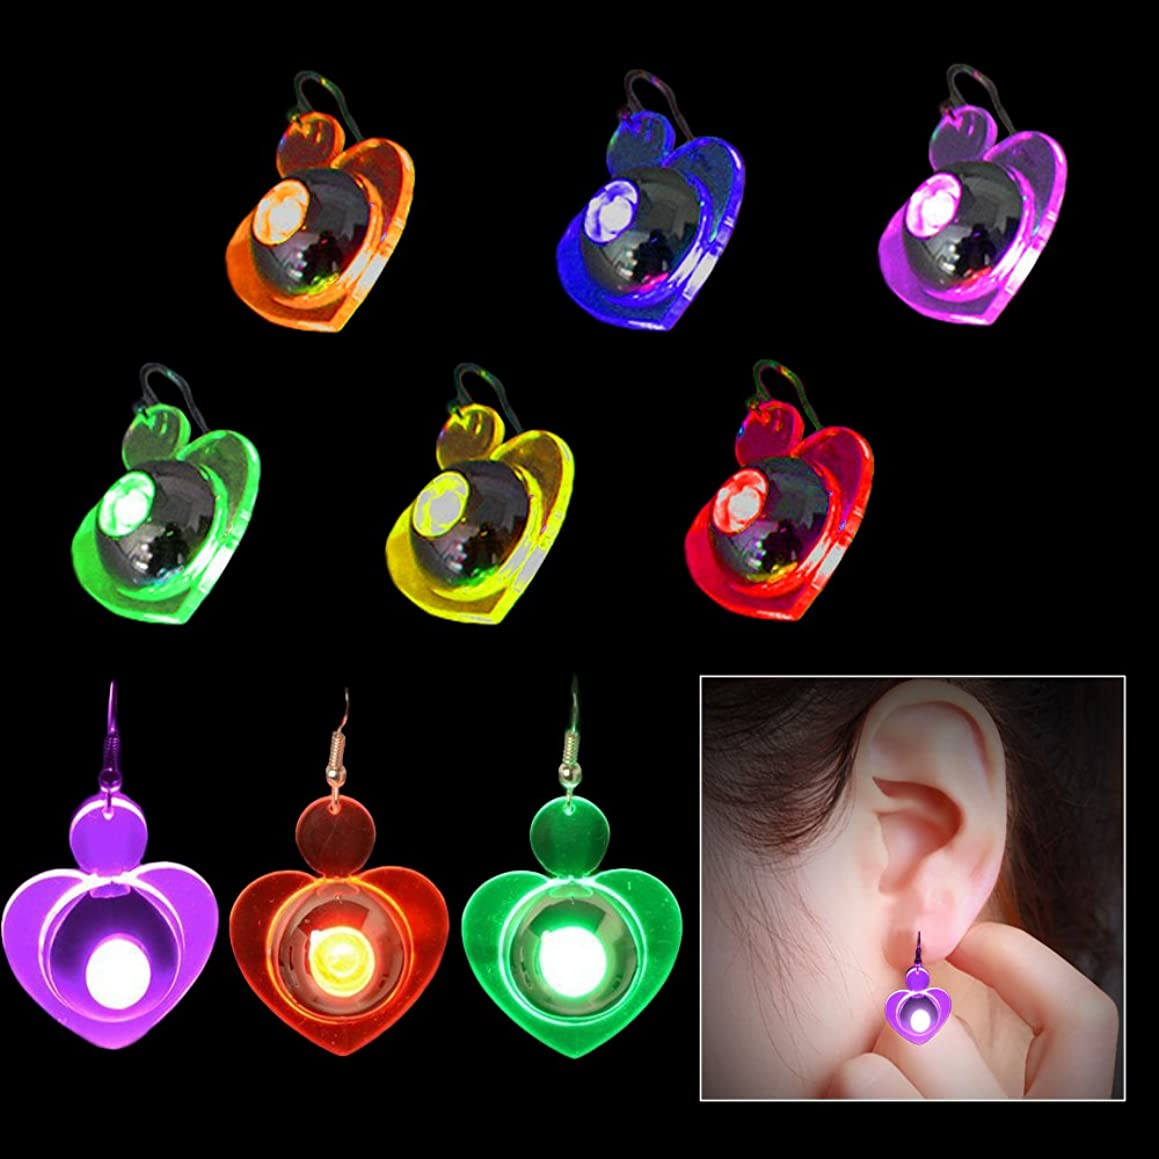 Toy Cubby Kids and Adult Flashing Heart LED Earrings - 4 Pairs / 4 Color